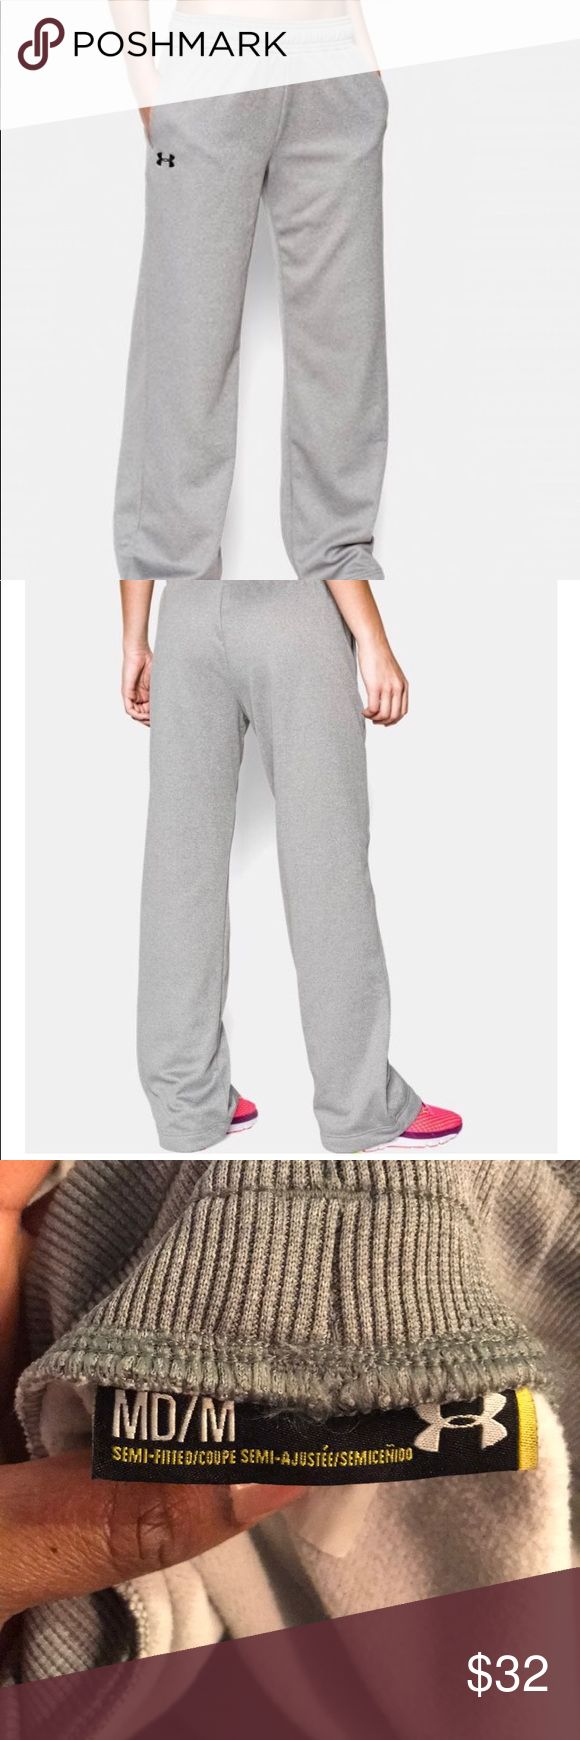 Fleece basketball pants Loose, more relaxed fit. Armour Fleece fabrication combines a soft, brushed inner layer with a smooth, fast-drying outer layer. Comfortable interior traps heat for superior warmth without adding a lot of bulk. Extended body length & adjusted seams give the ultimate fit & comfort. Two front pockets. Under Armour Pants Track Pants & Joggers